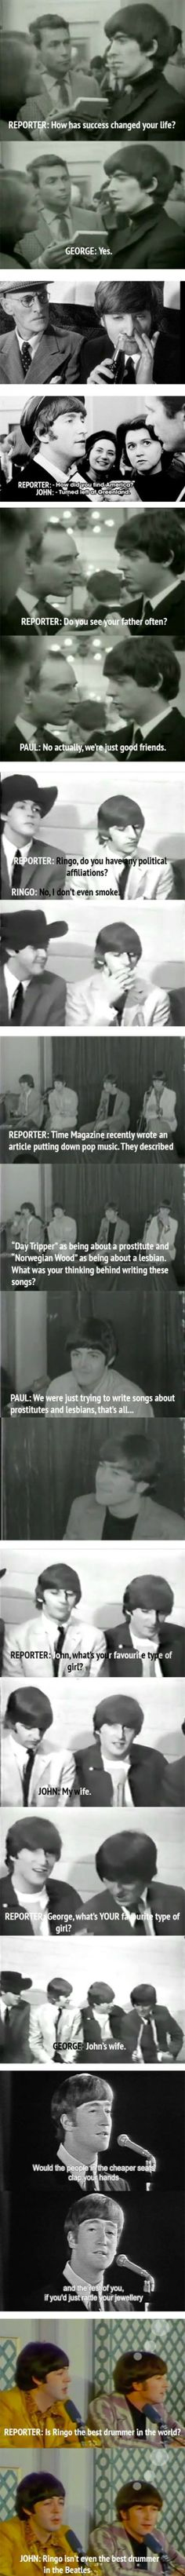 The Beatles were the masters of sass.